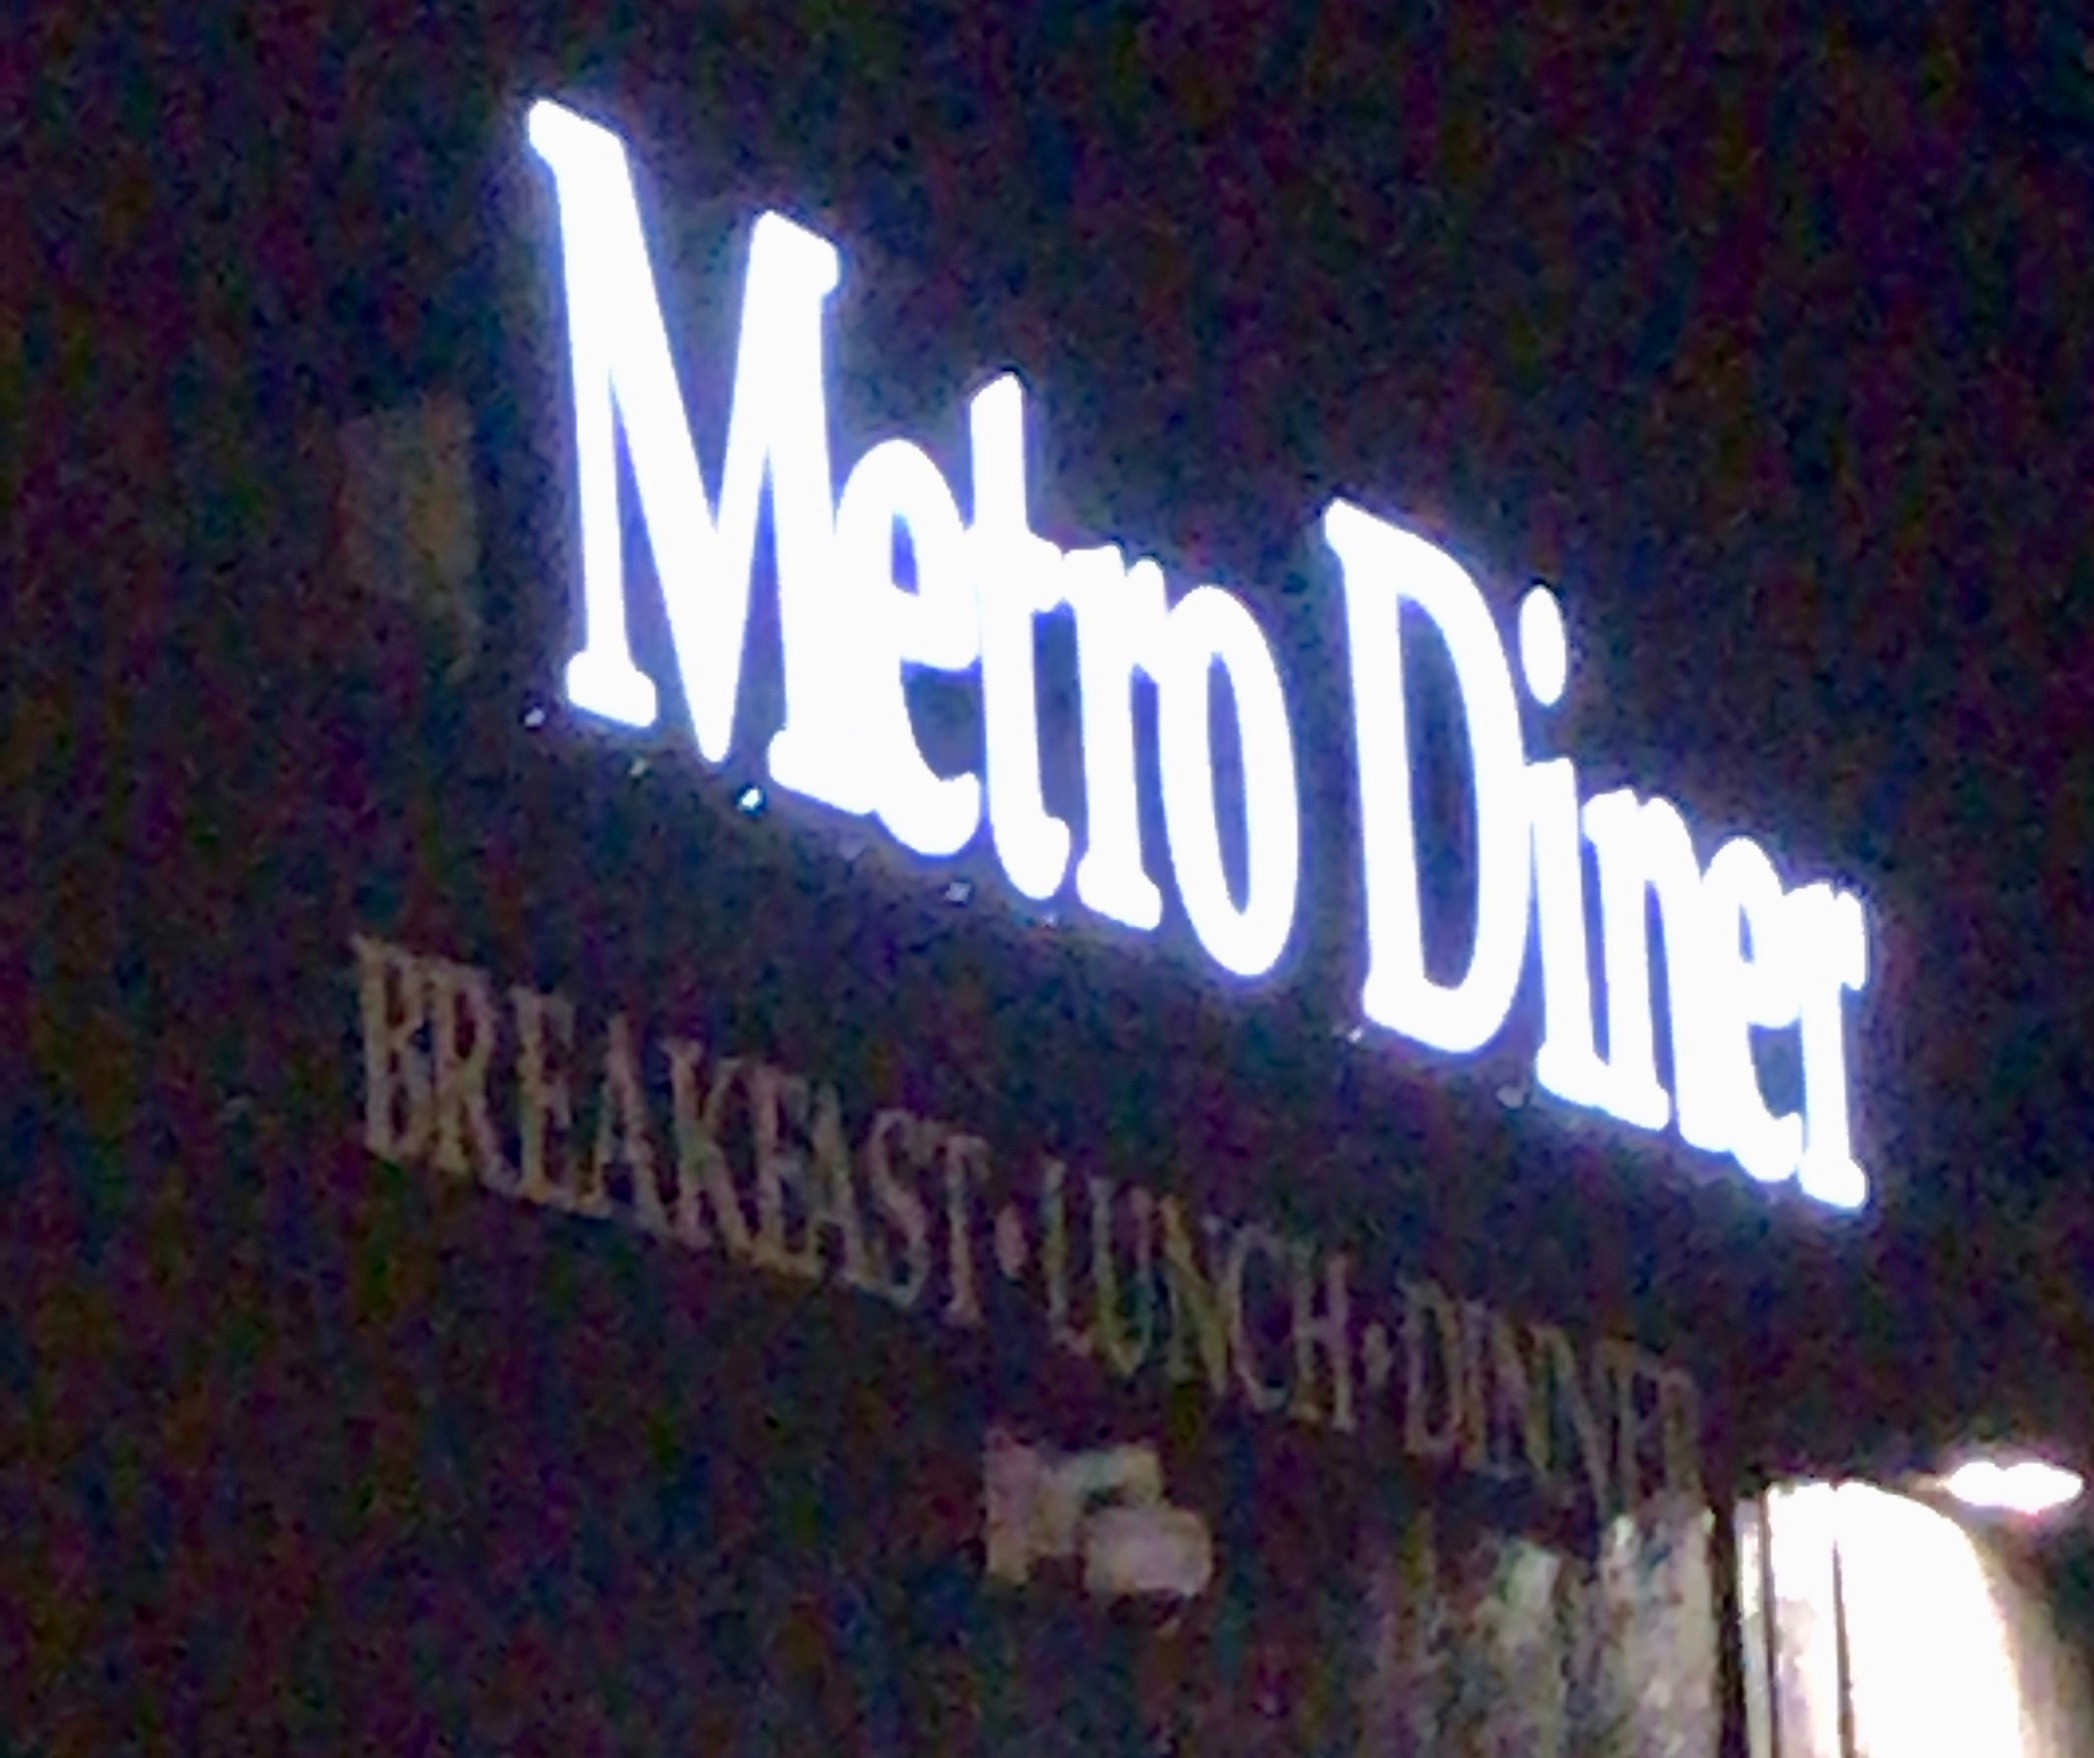 Metro Diner sign